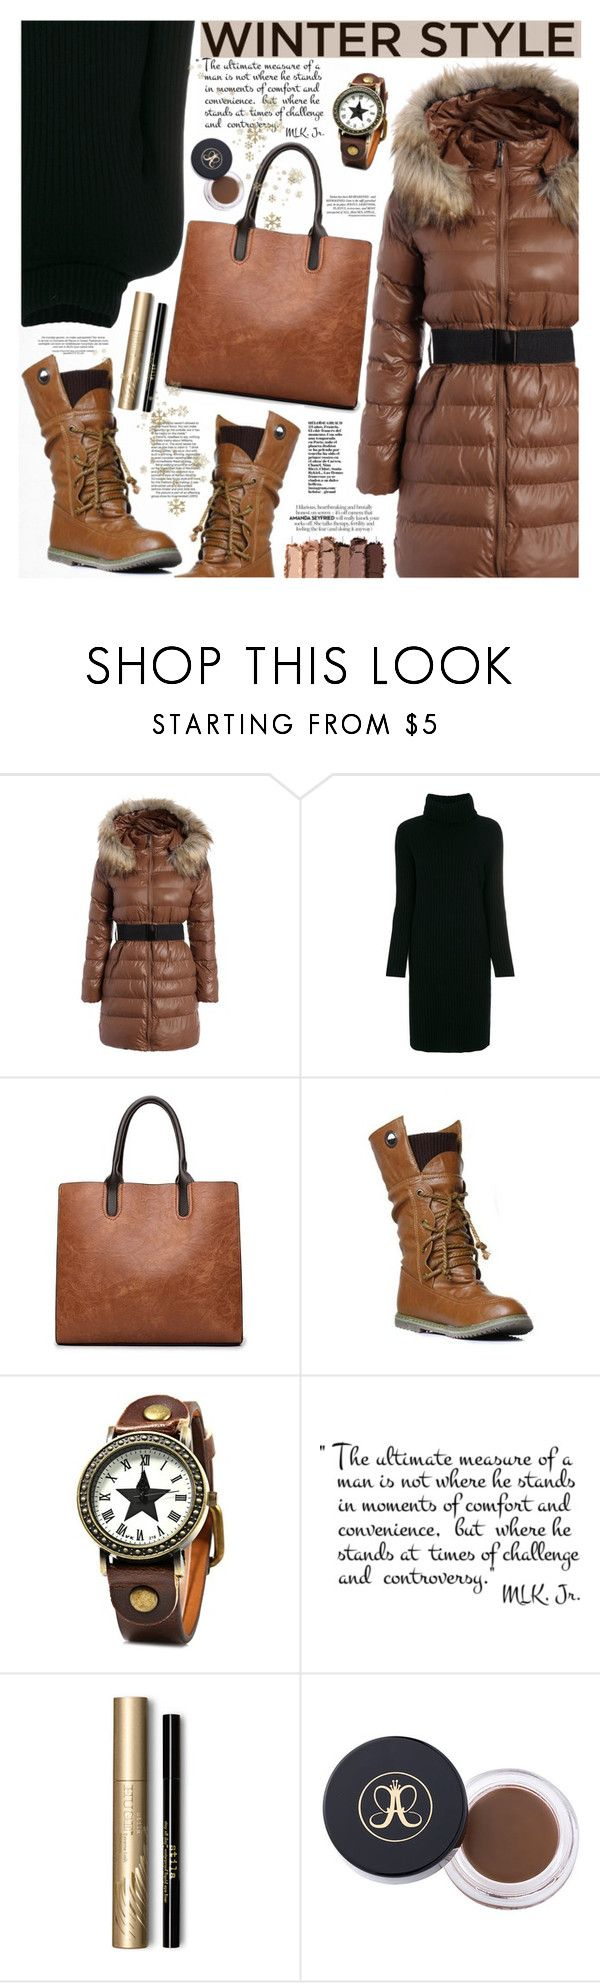 """""""Winter Style"""" by katjuncica ❤ liked on Polyvore featuring Lamberto Losani, Urban Decay, Stila, winterboots, brownbag, winterstyle, browncoat and beltedcoat"""